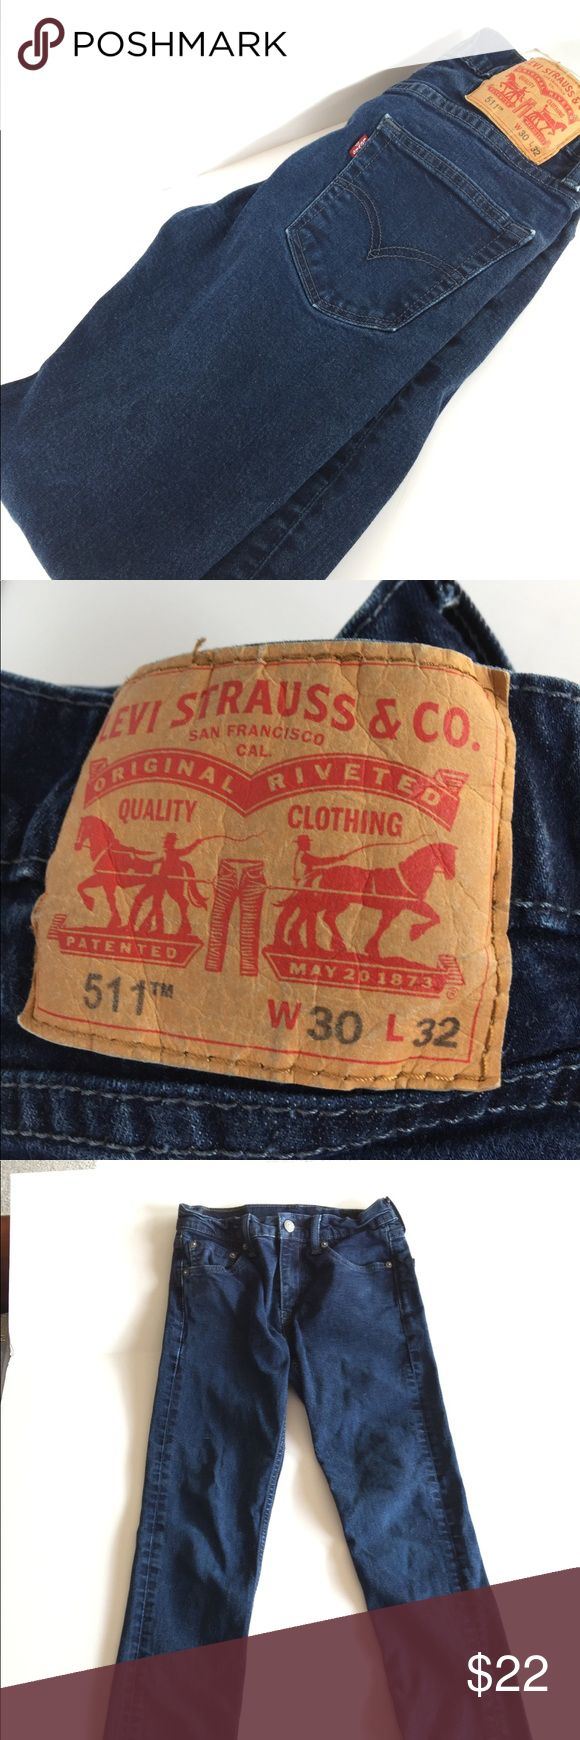 Levi's 511 Slim Fit Jeans 30x32 Men's/Boys Excellent used men's/boys Levi's 511 slim fit denim jeans size 30 x 32.  No stains, rips or holes and in like new condition. Levi's Jeans Slim